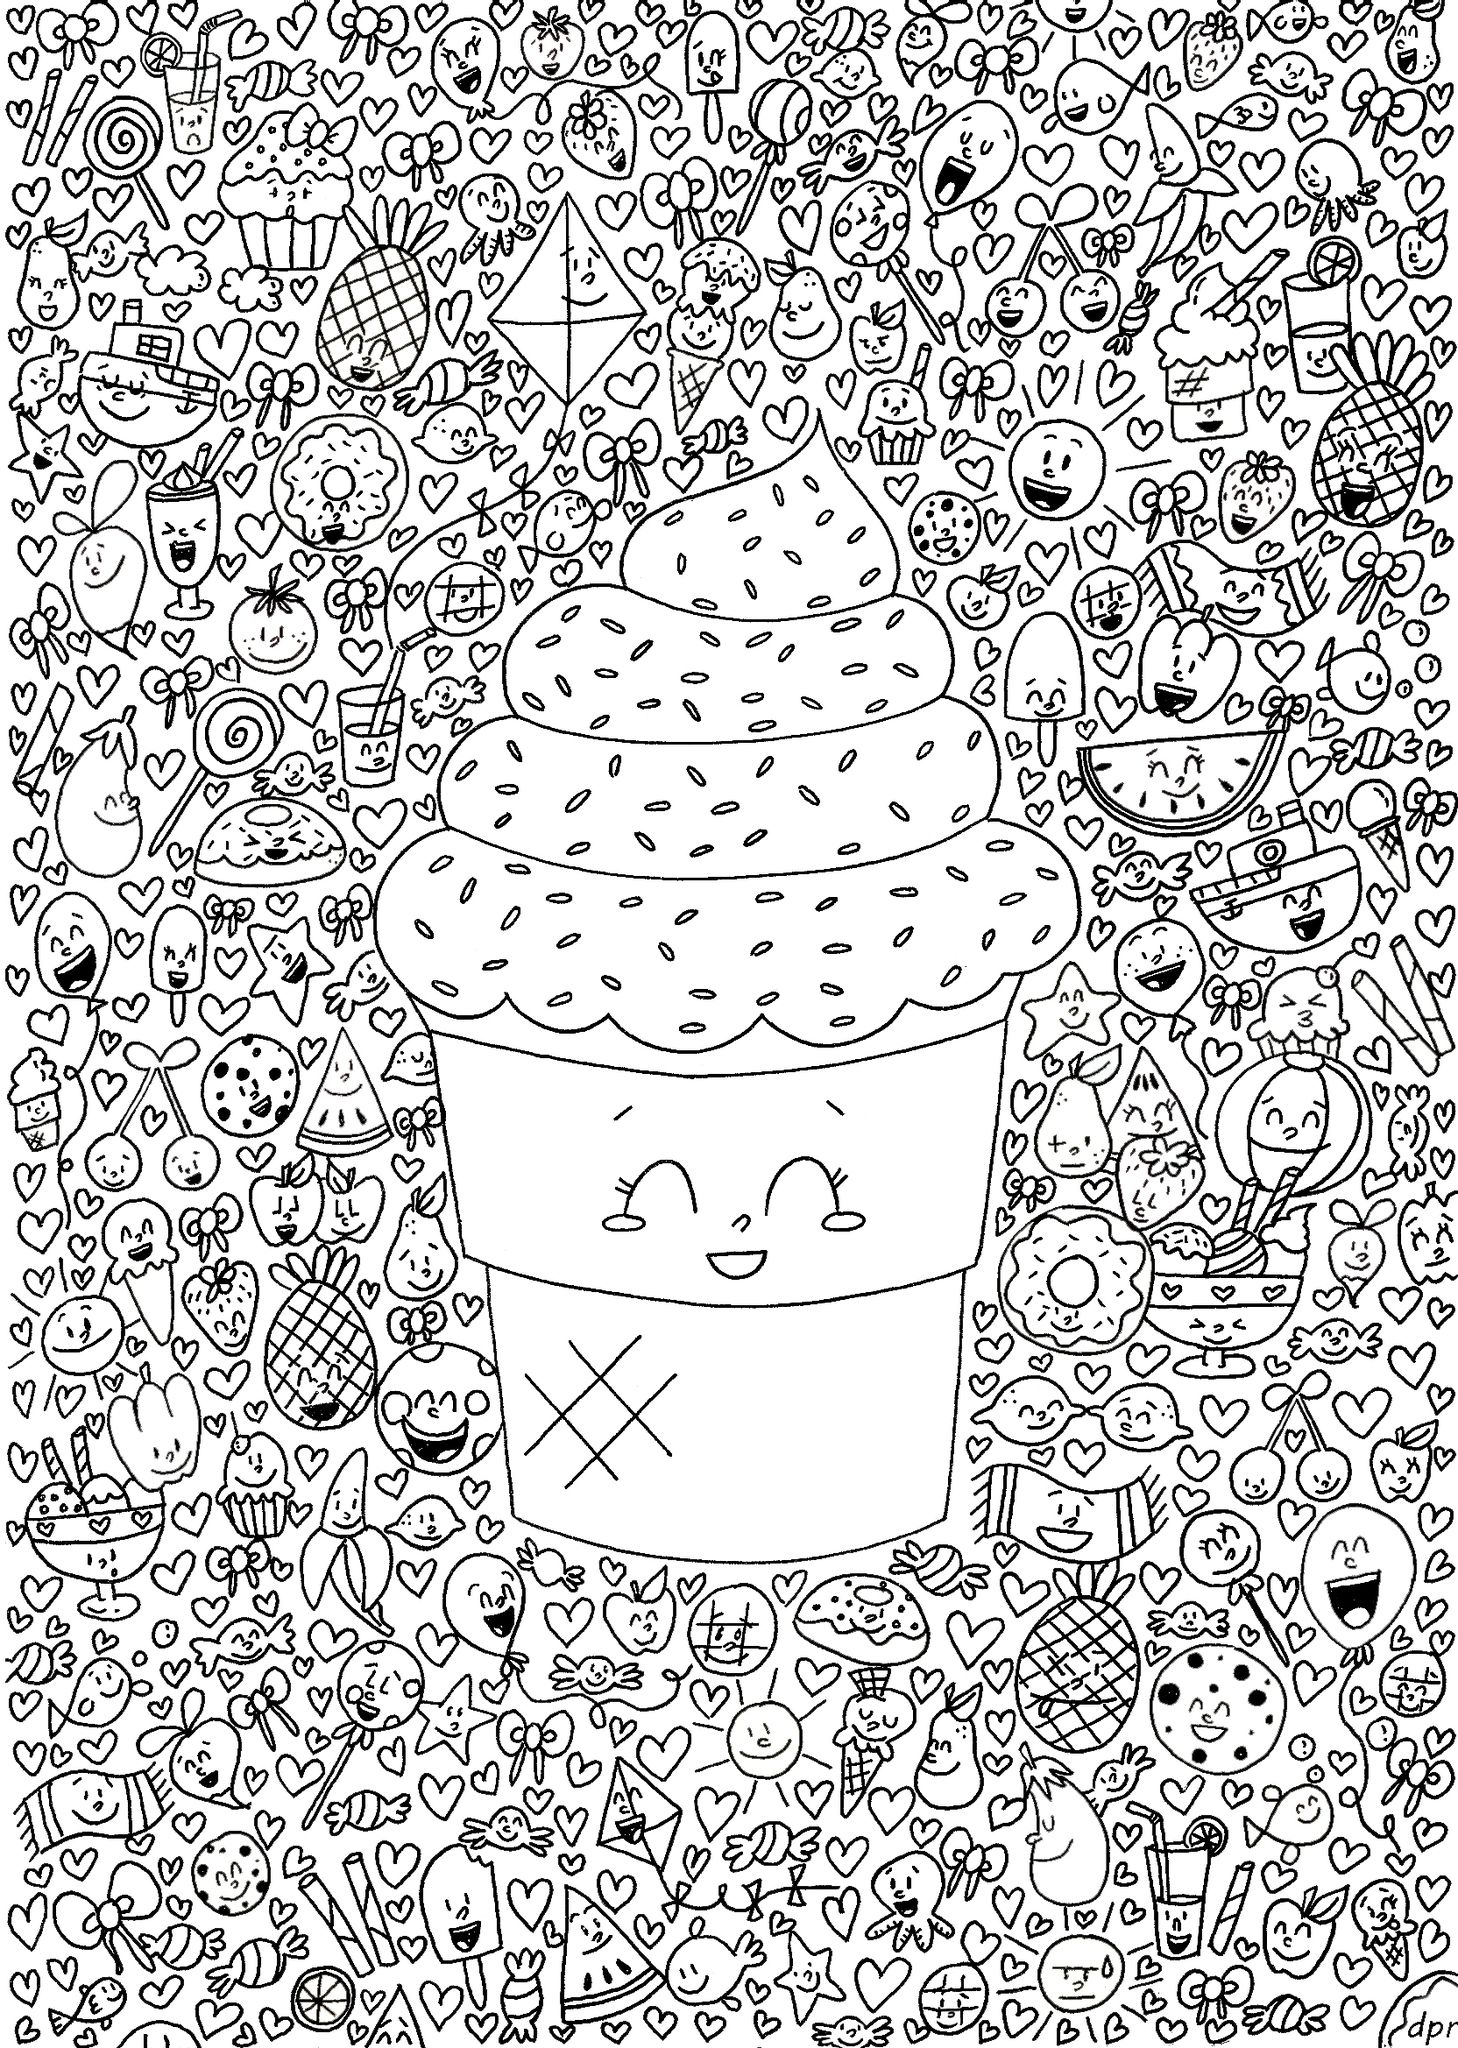 Coloriage art th rapie kawaii coloriage imprimer - Coloriage anti stress pour adulte a imprimer ...